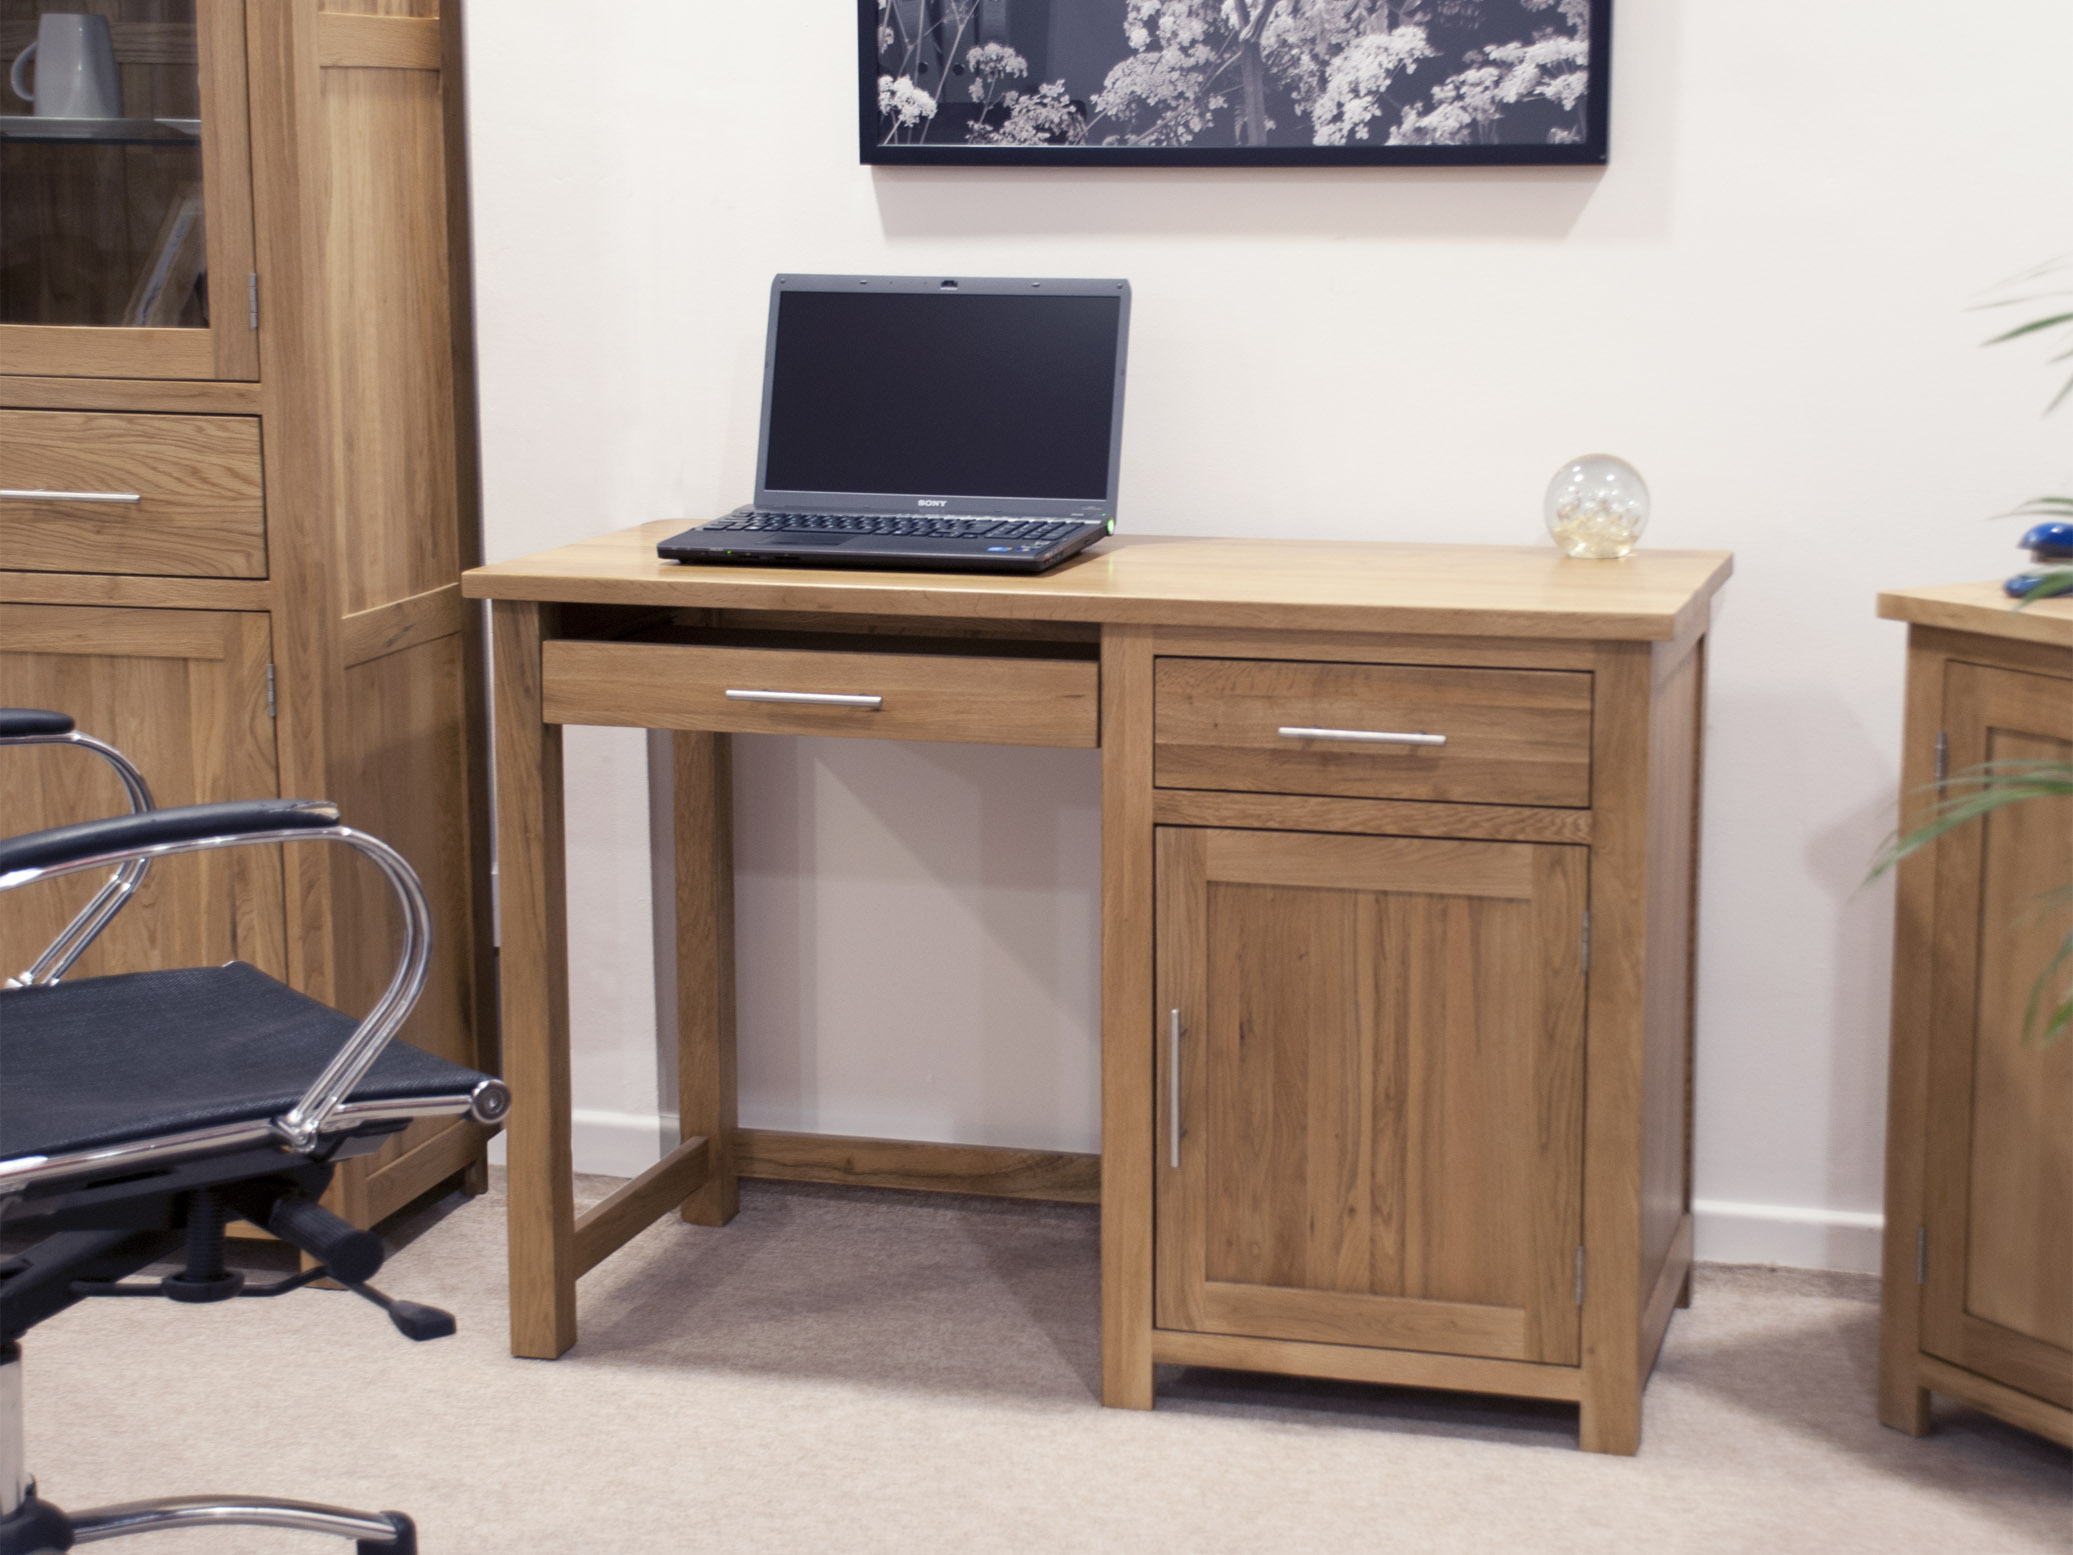 windsor solid oak furniture small office pc computer desk